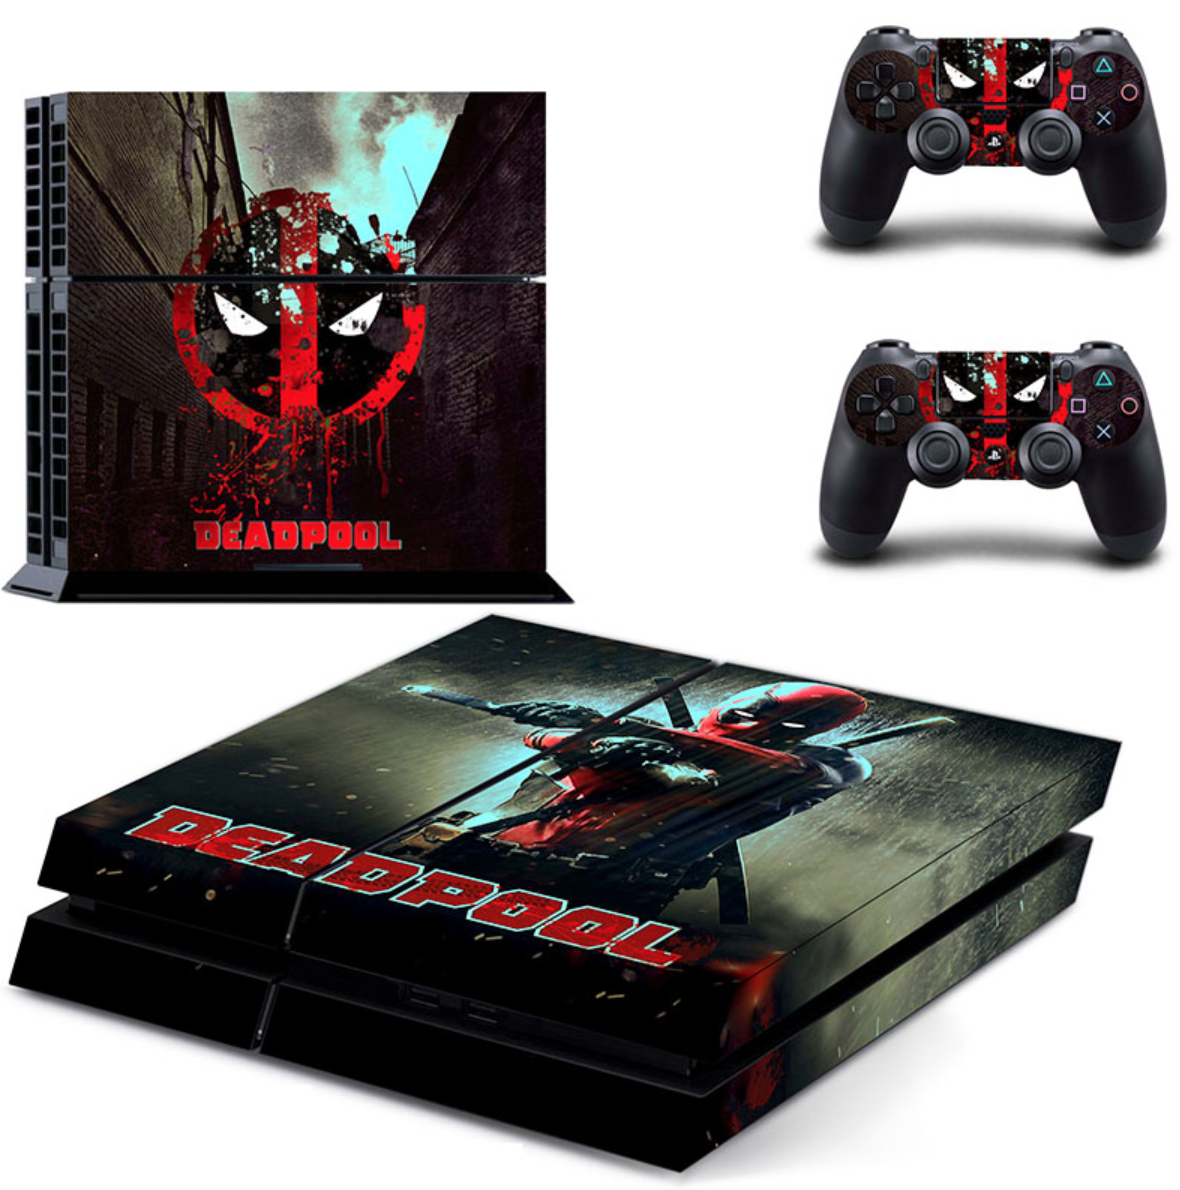 Deadpool Skin For Your Ps4 Controller Console Ps4 Skins Playstation 4 Console Ps4 Console